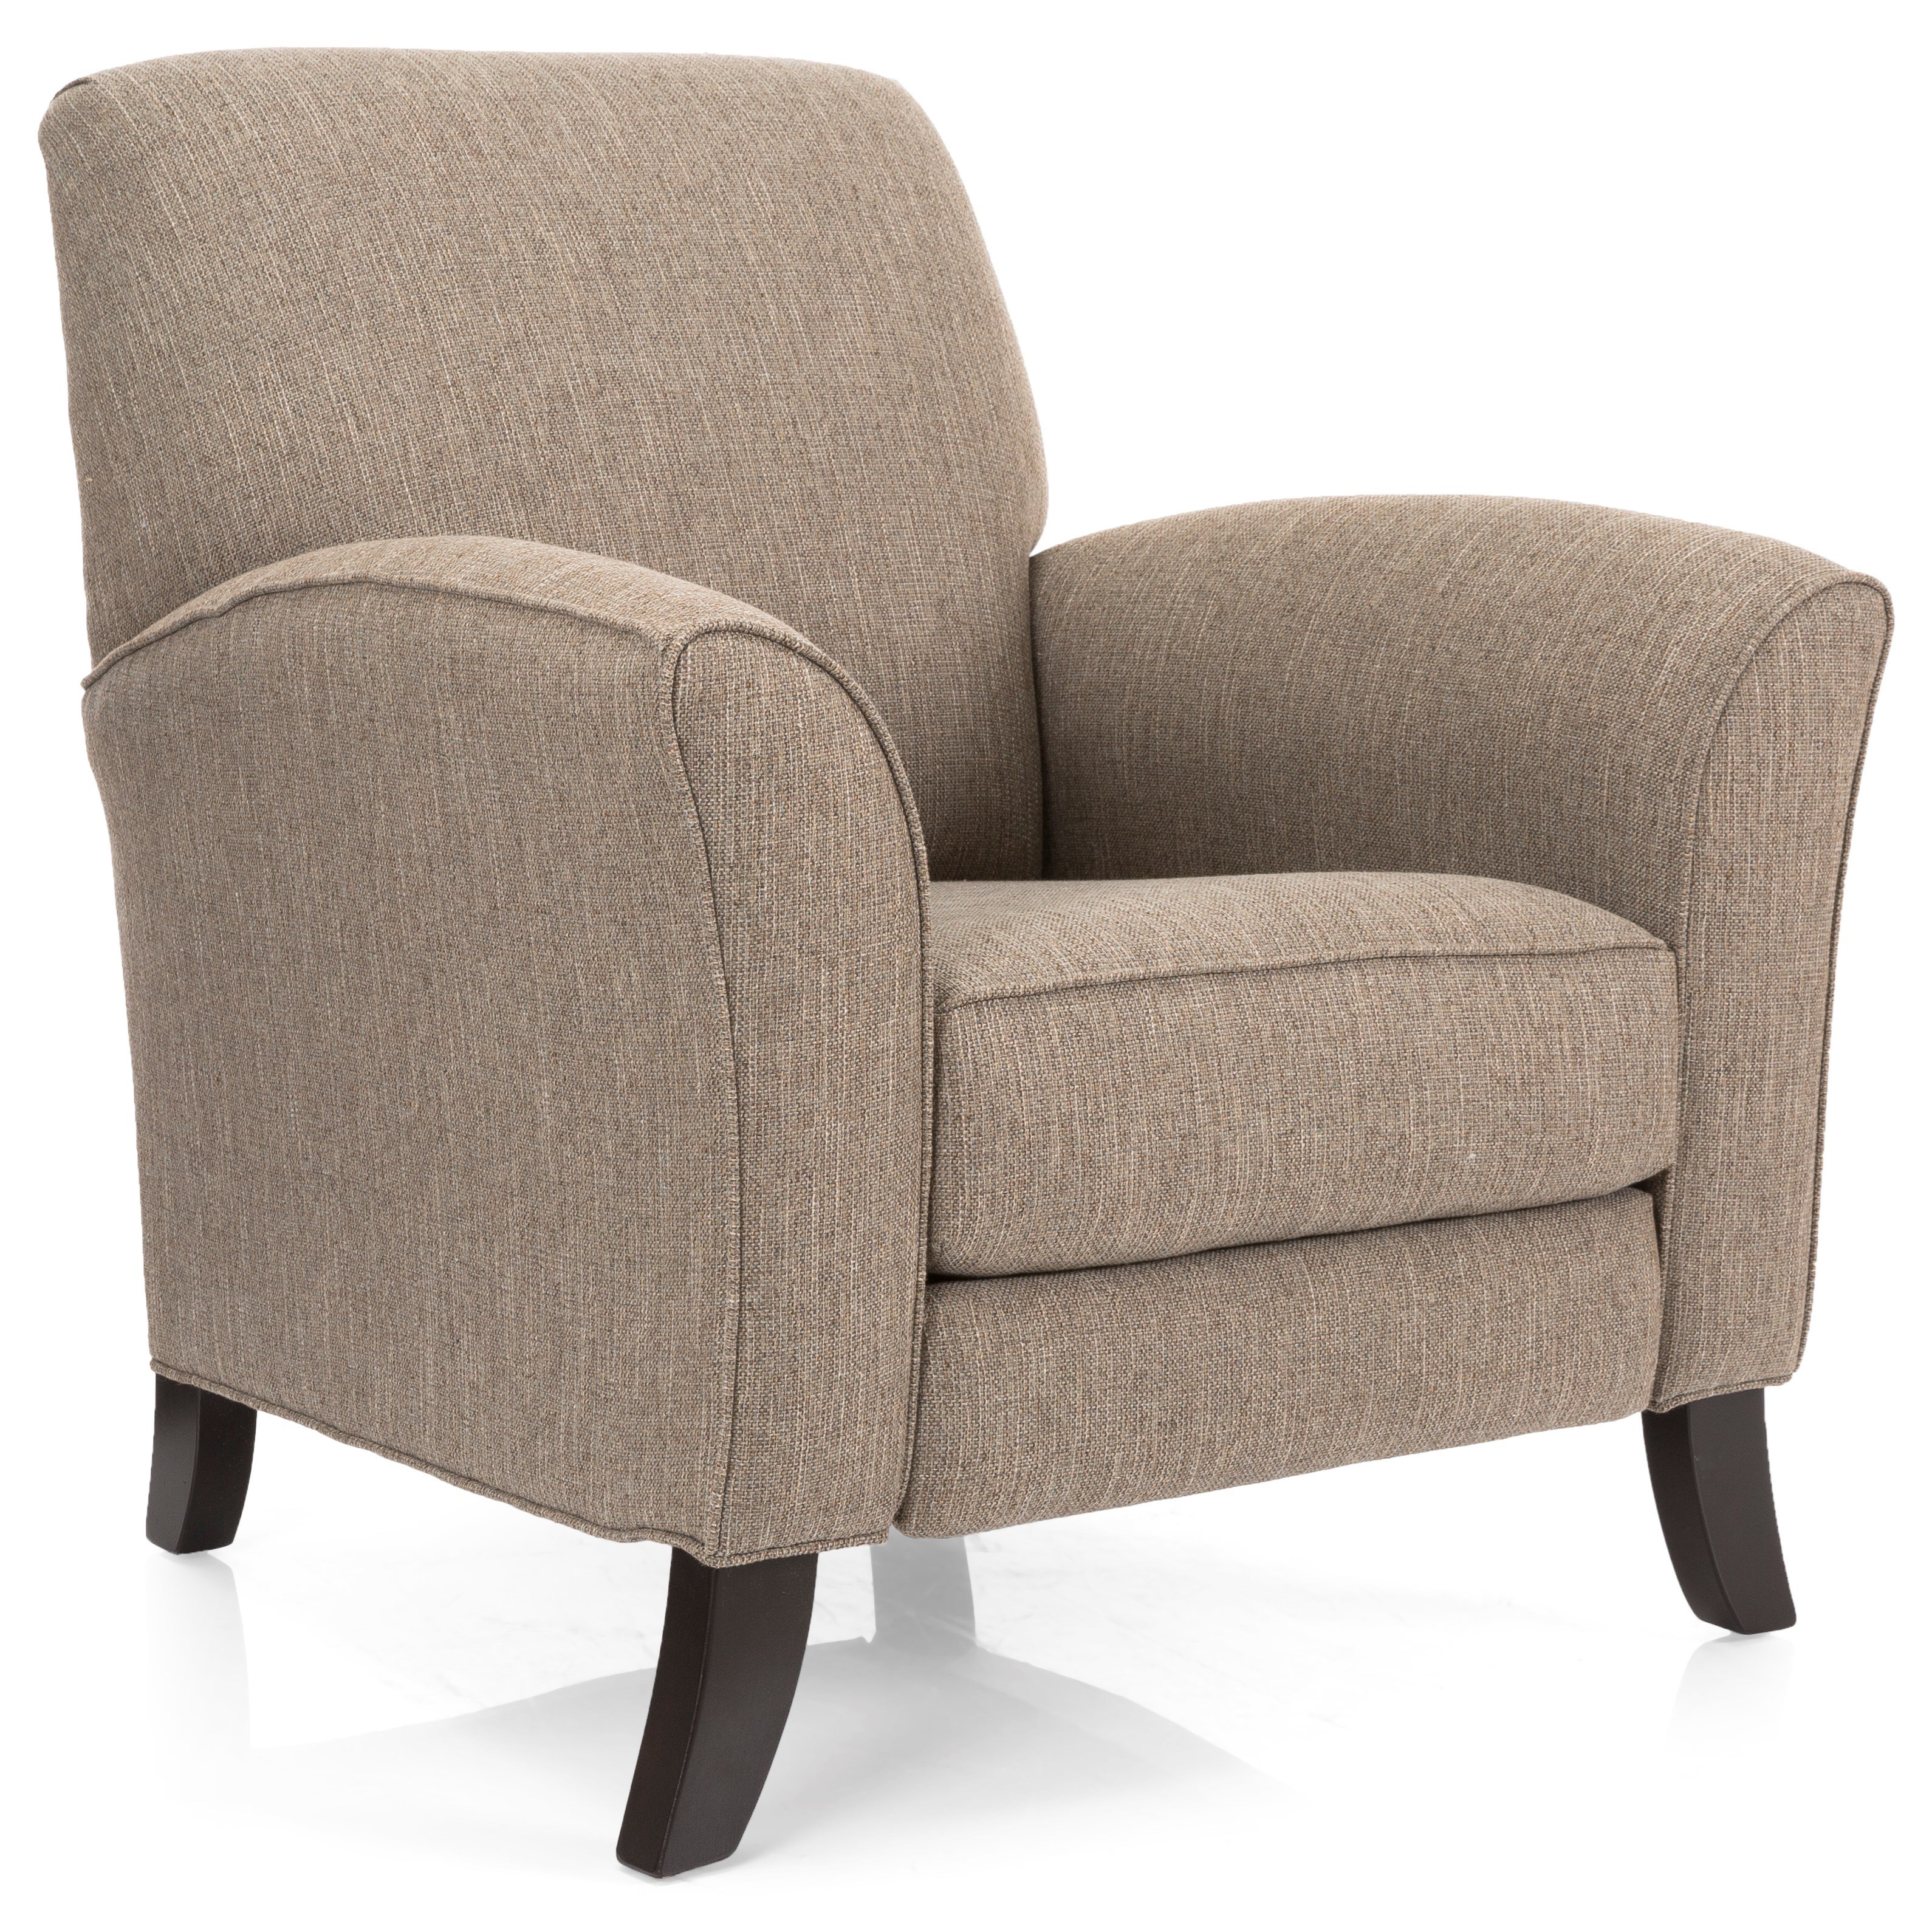 2751 Push Back Recliner by Decor-Rest at Stoney Creek Furniture